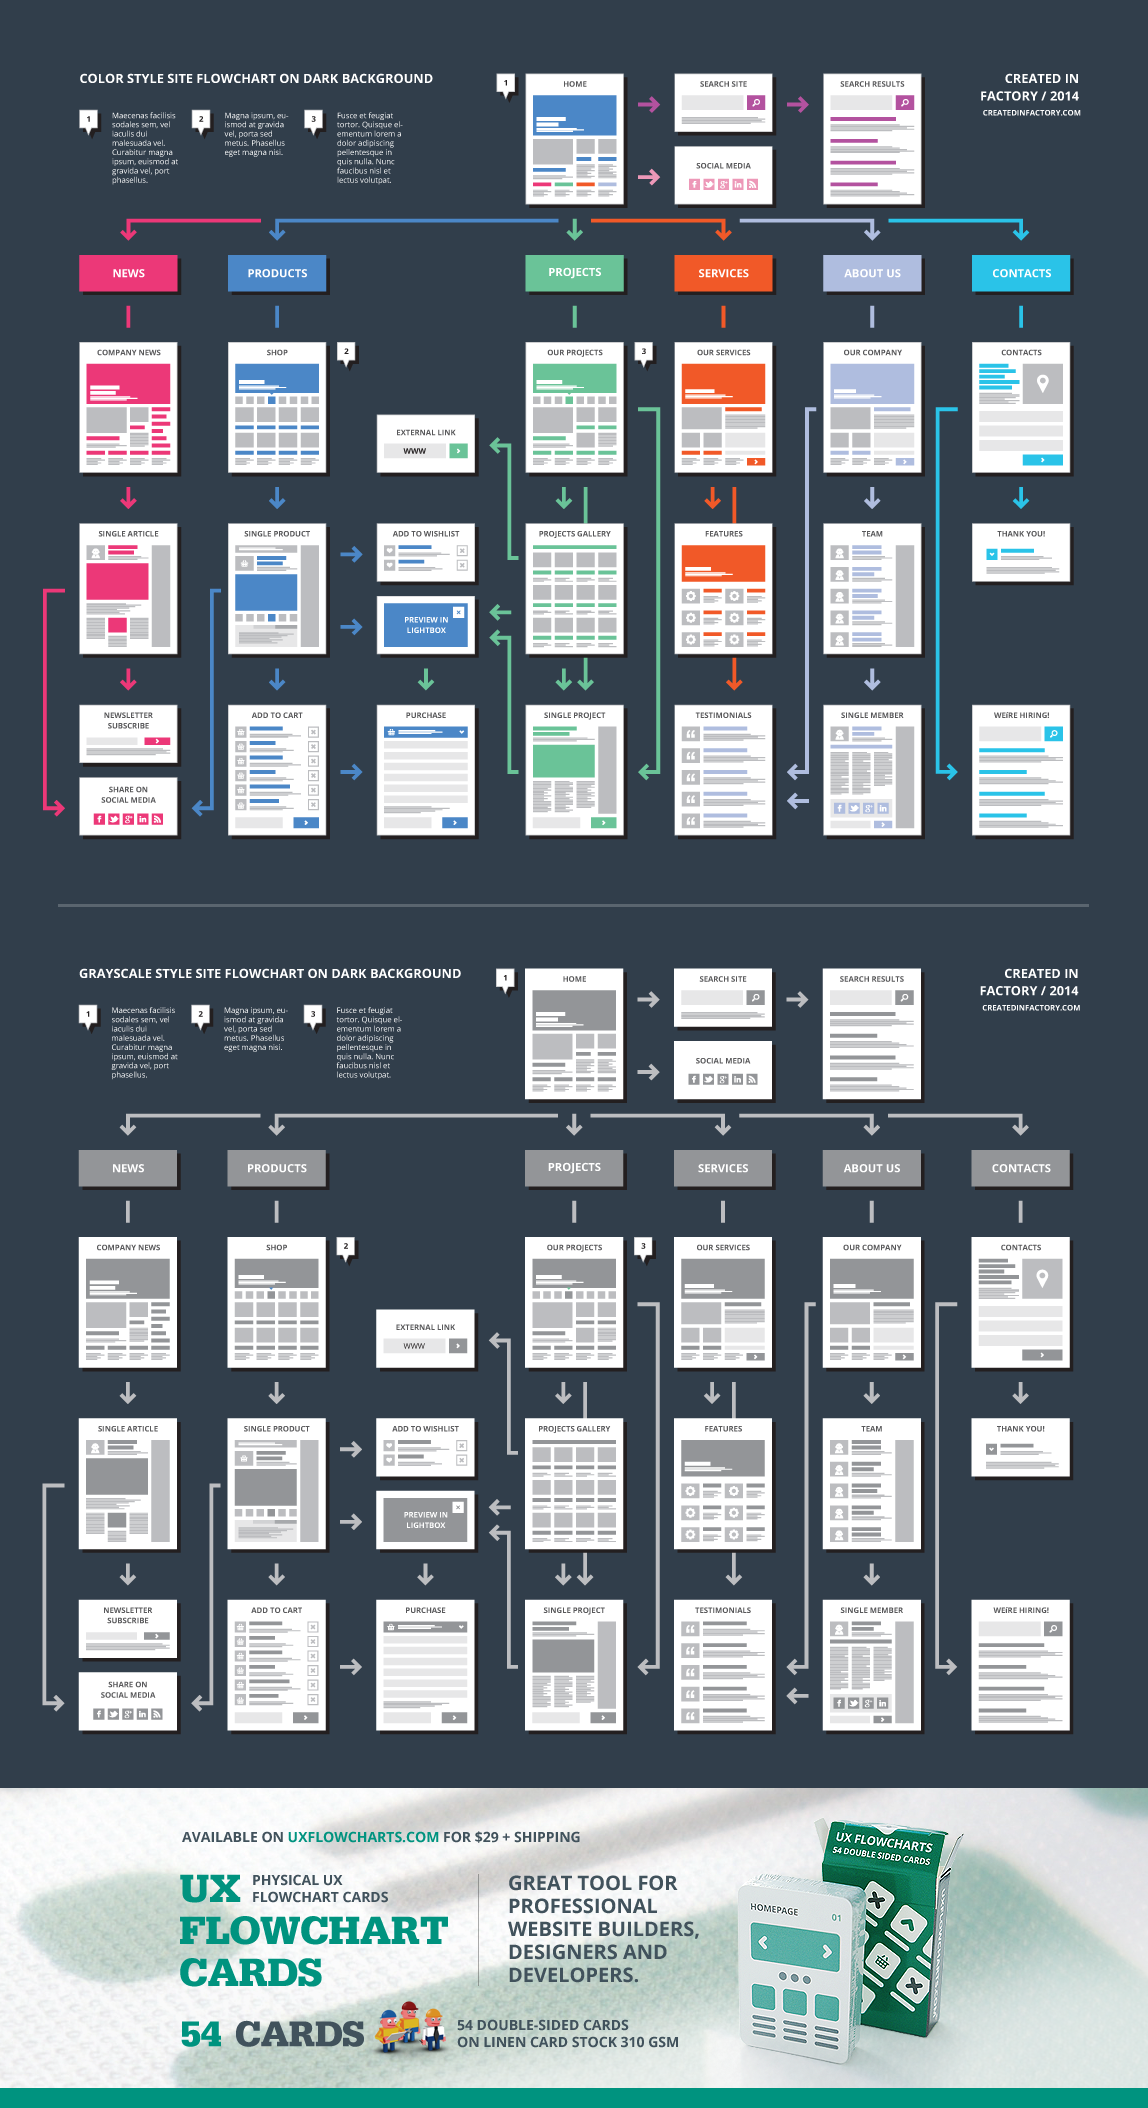 EasyOne Website Flowchart Template | Diseño editorial, Electrónica y ...